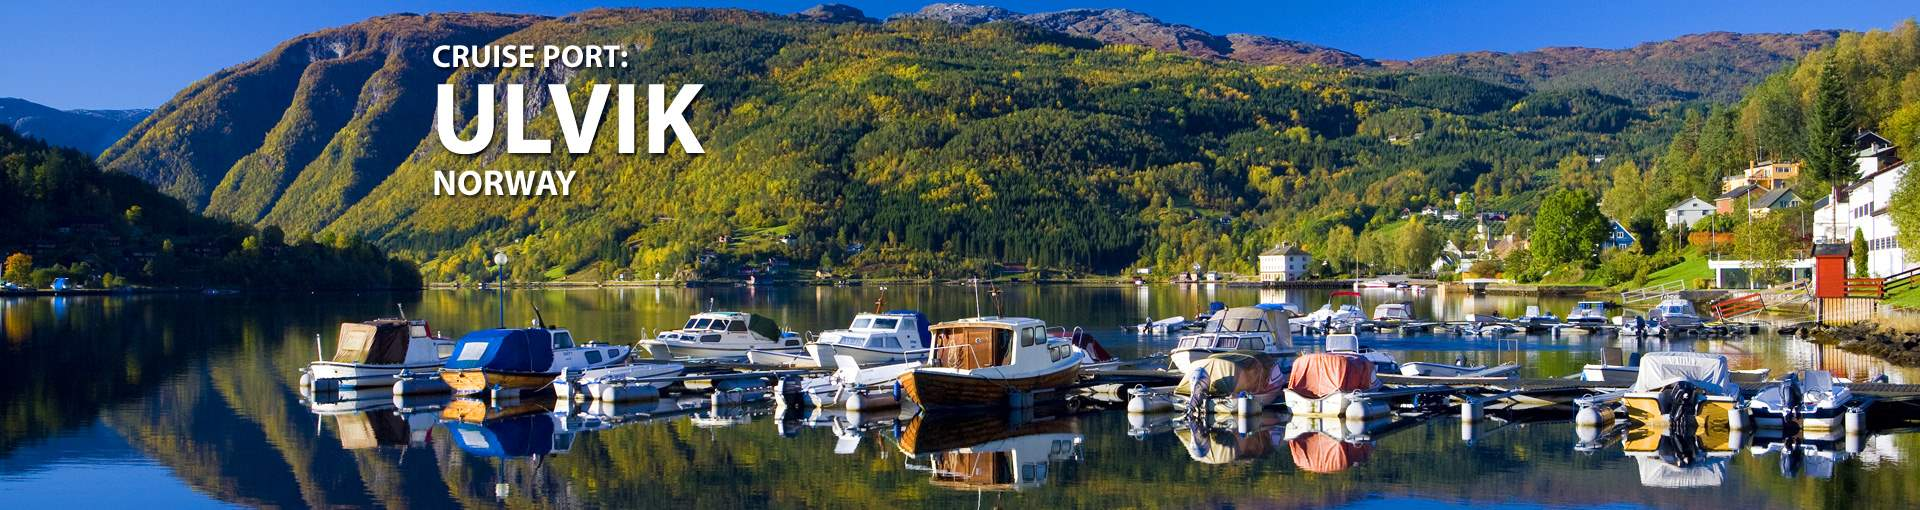 Cruises to Ulvik, Norway